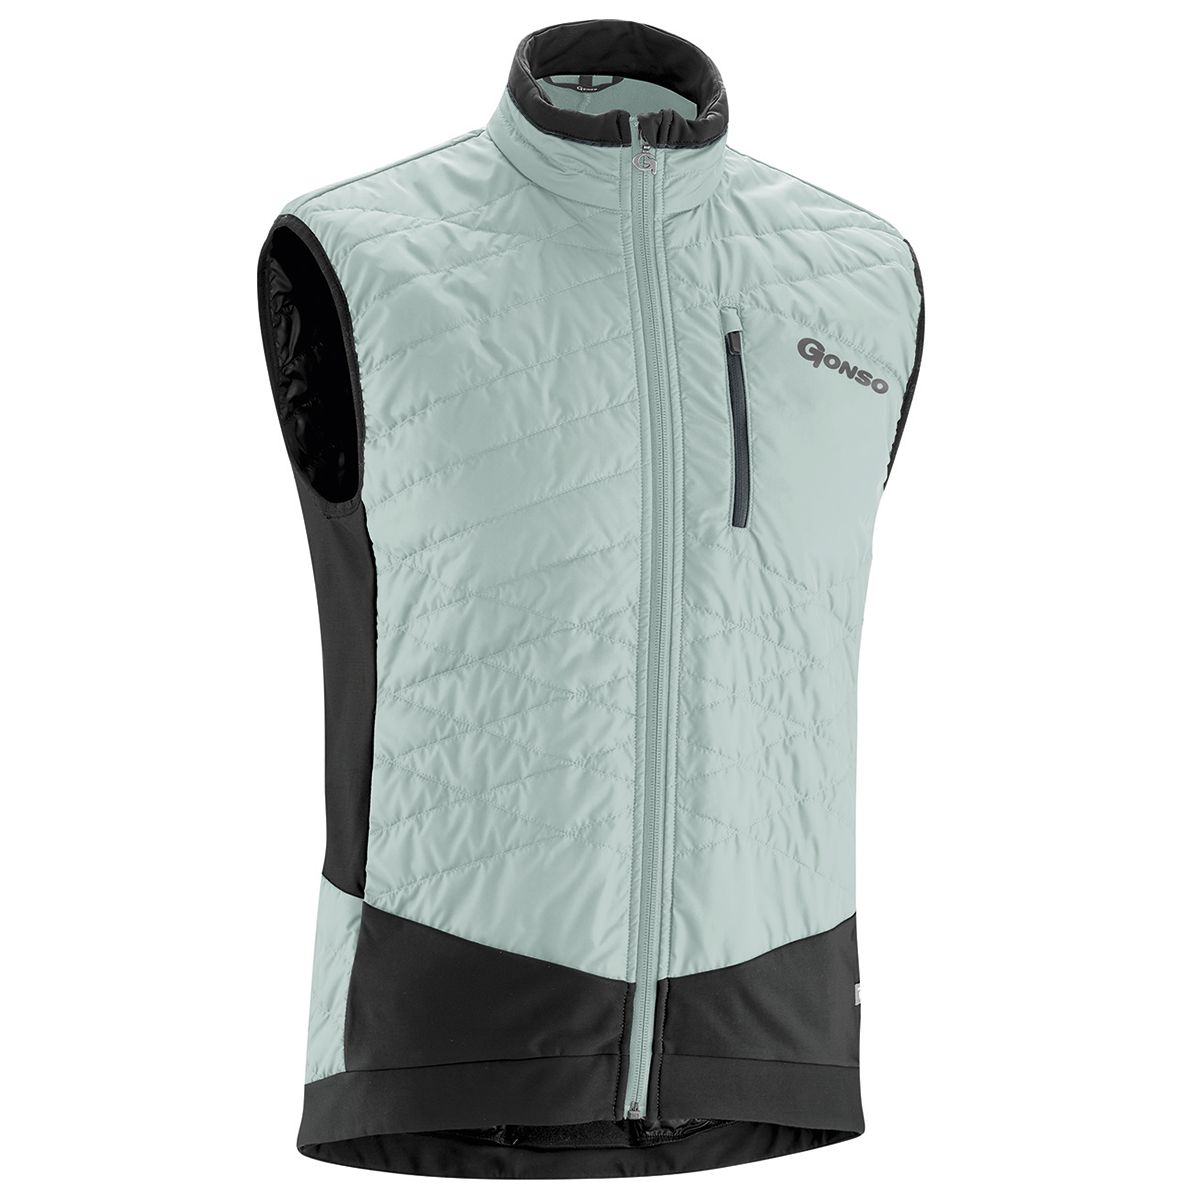 GLANDON cycling vest